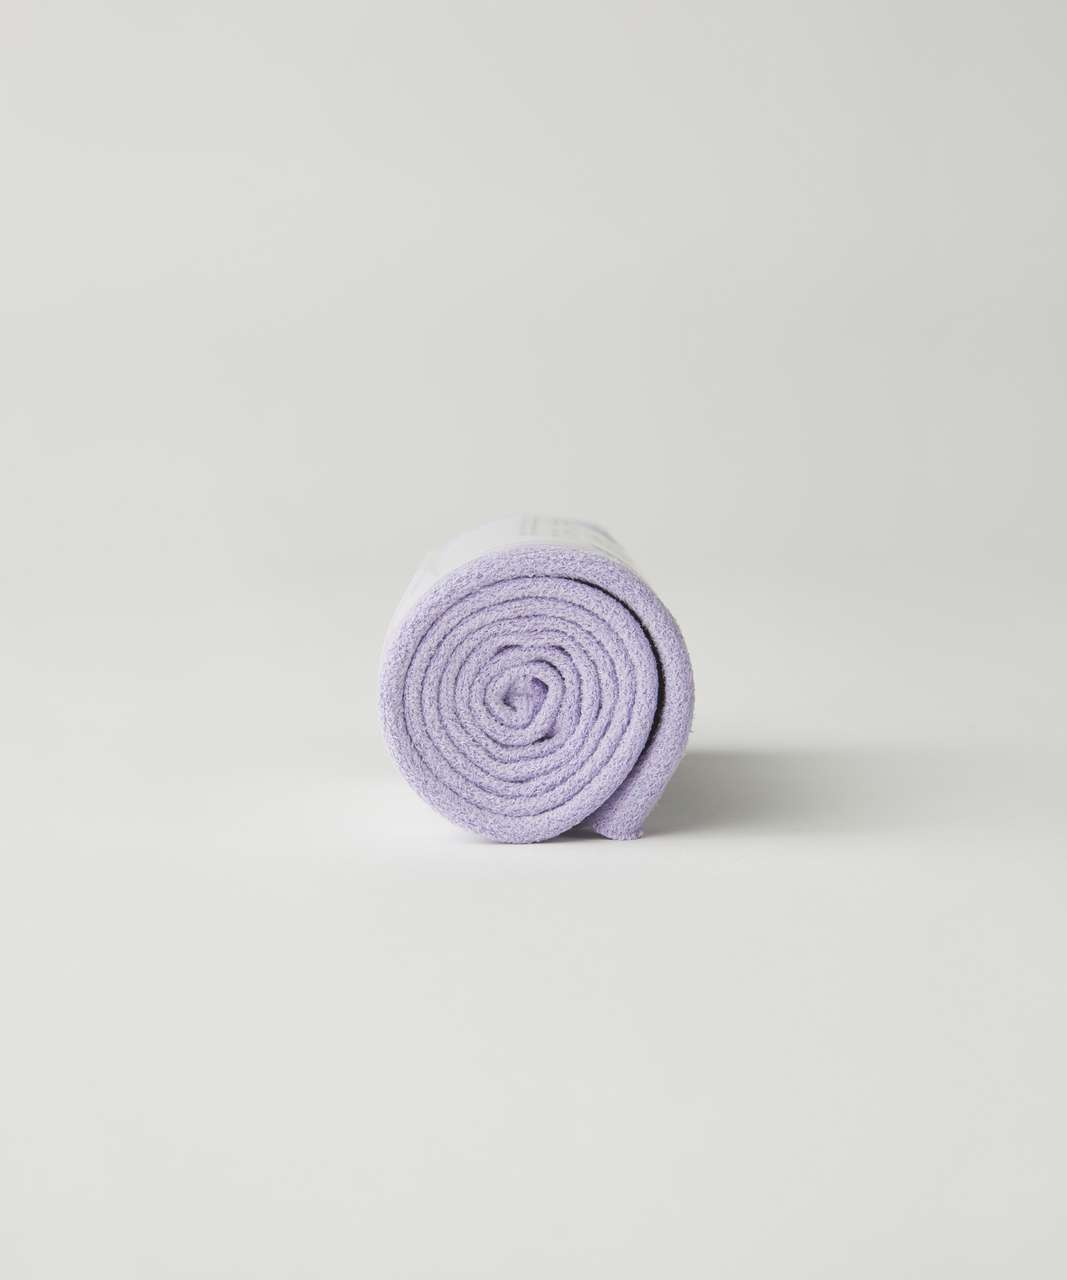 Lululemon The (Small) Towel - Lilac